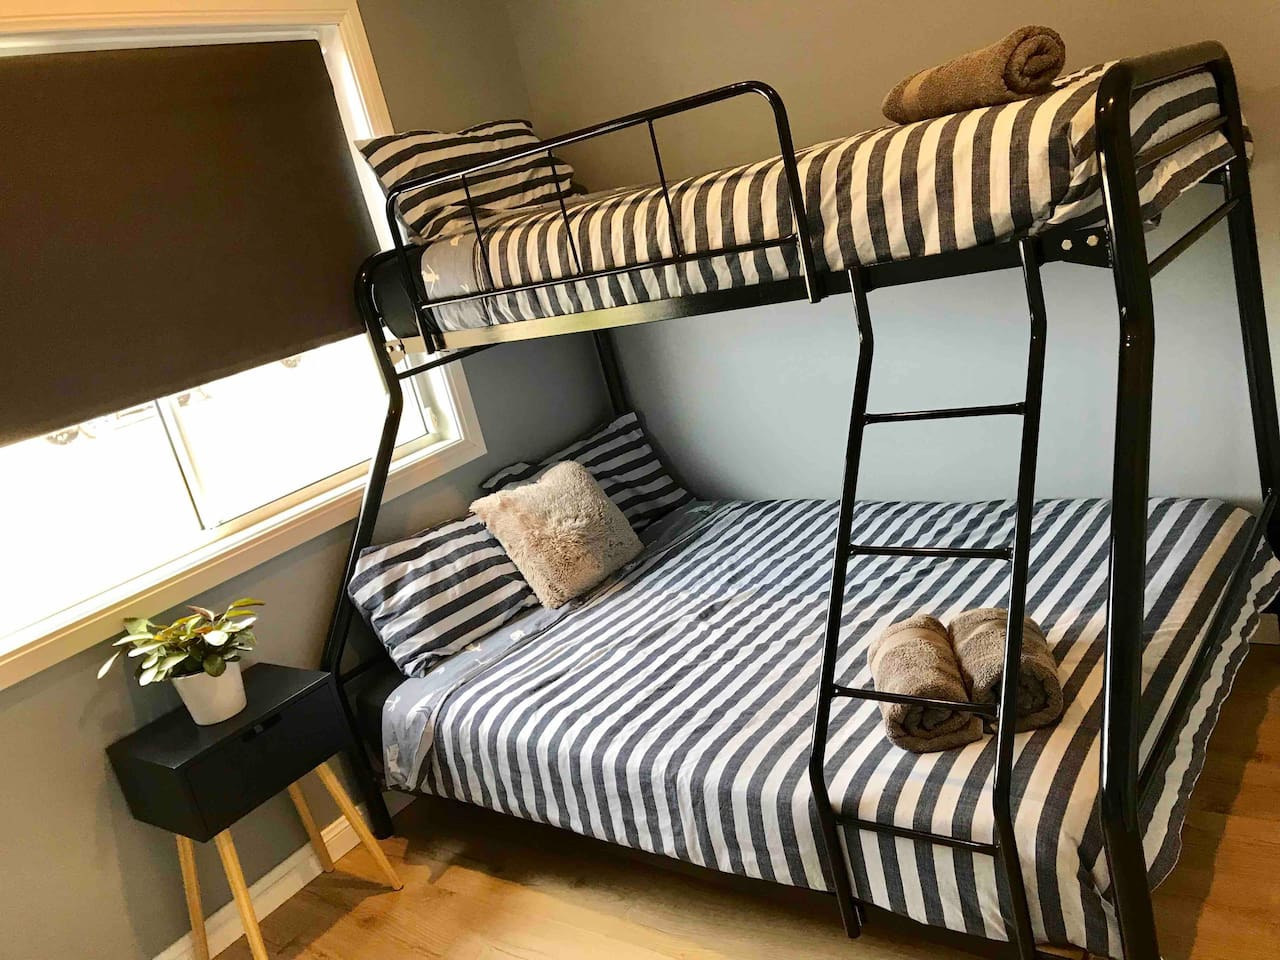 Bedroom 2 with double bunk bed